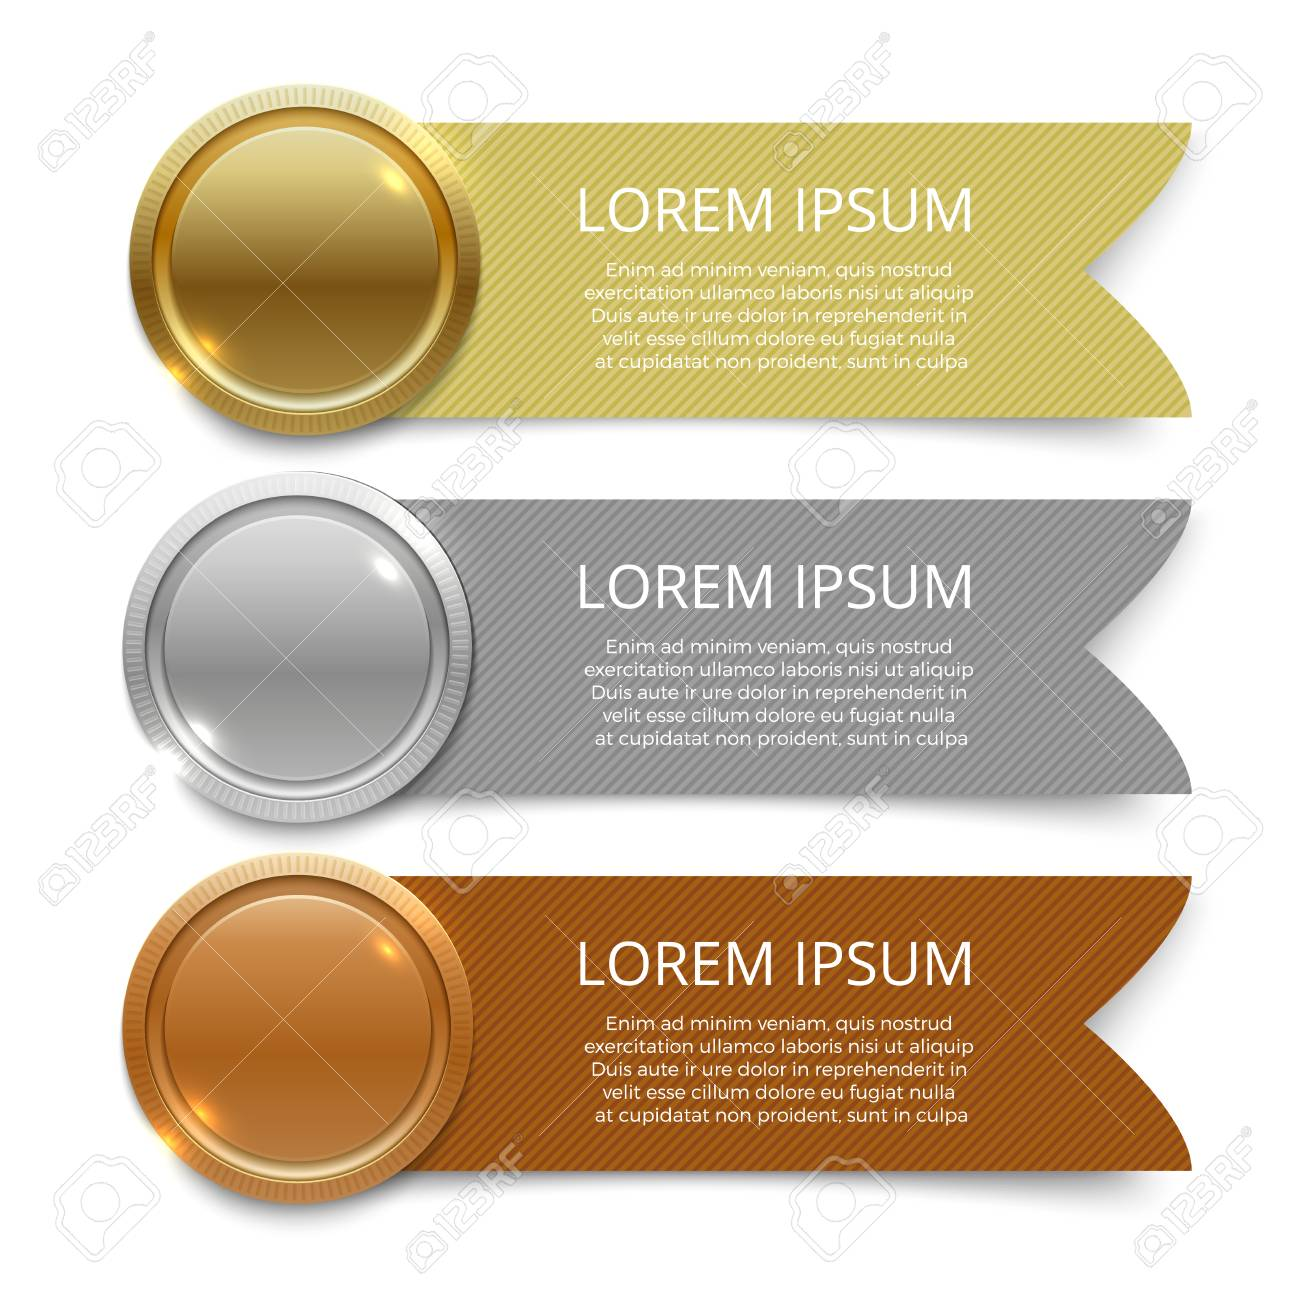 Gold, silver and bronze medals banners design - 92410341